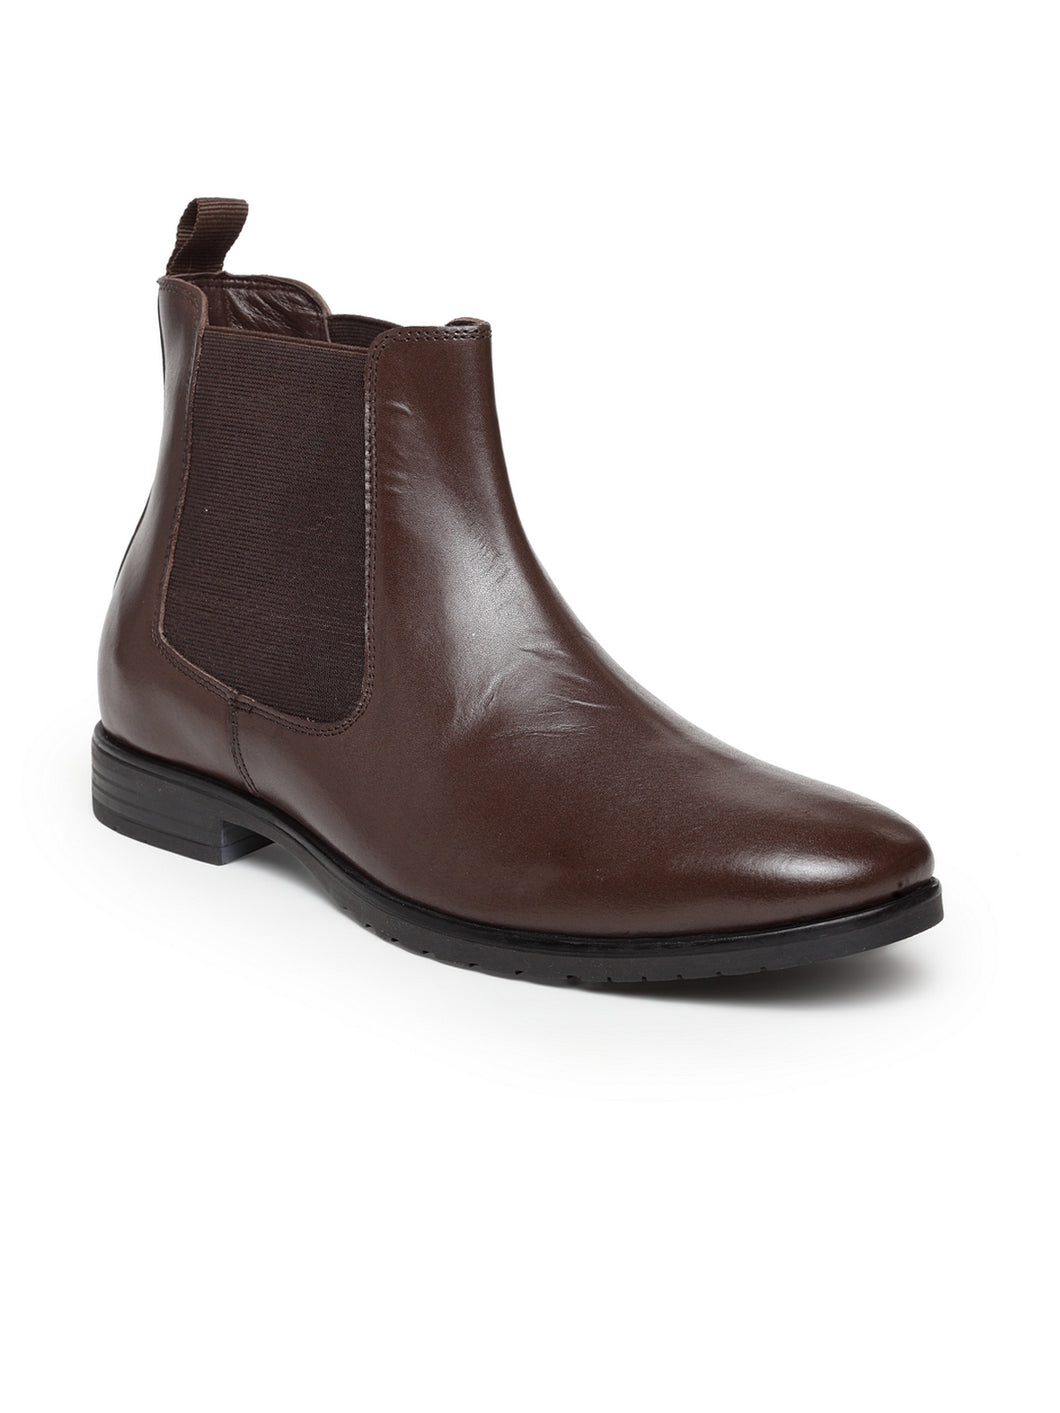 Teakwood Leathers Men's Brown Chelsea Boots